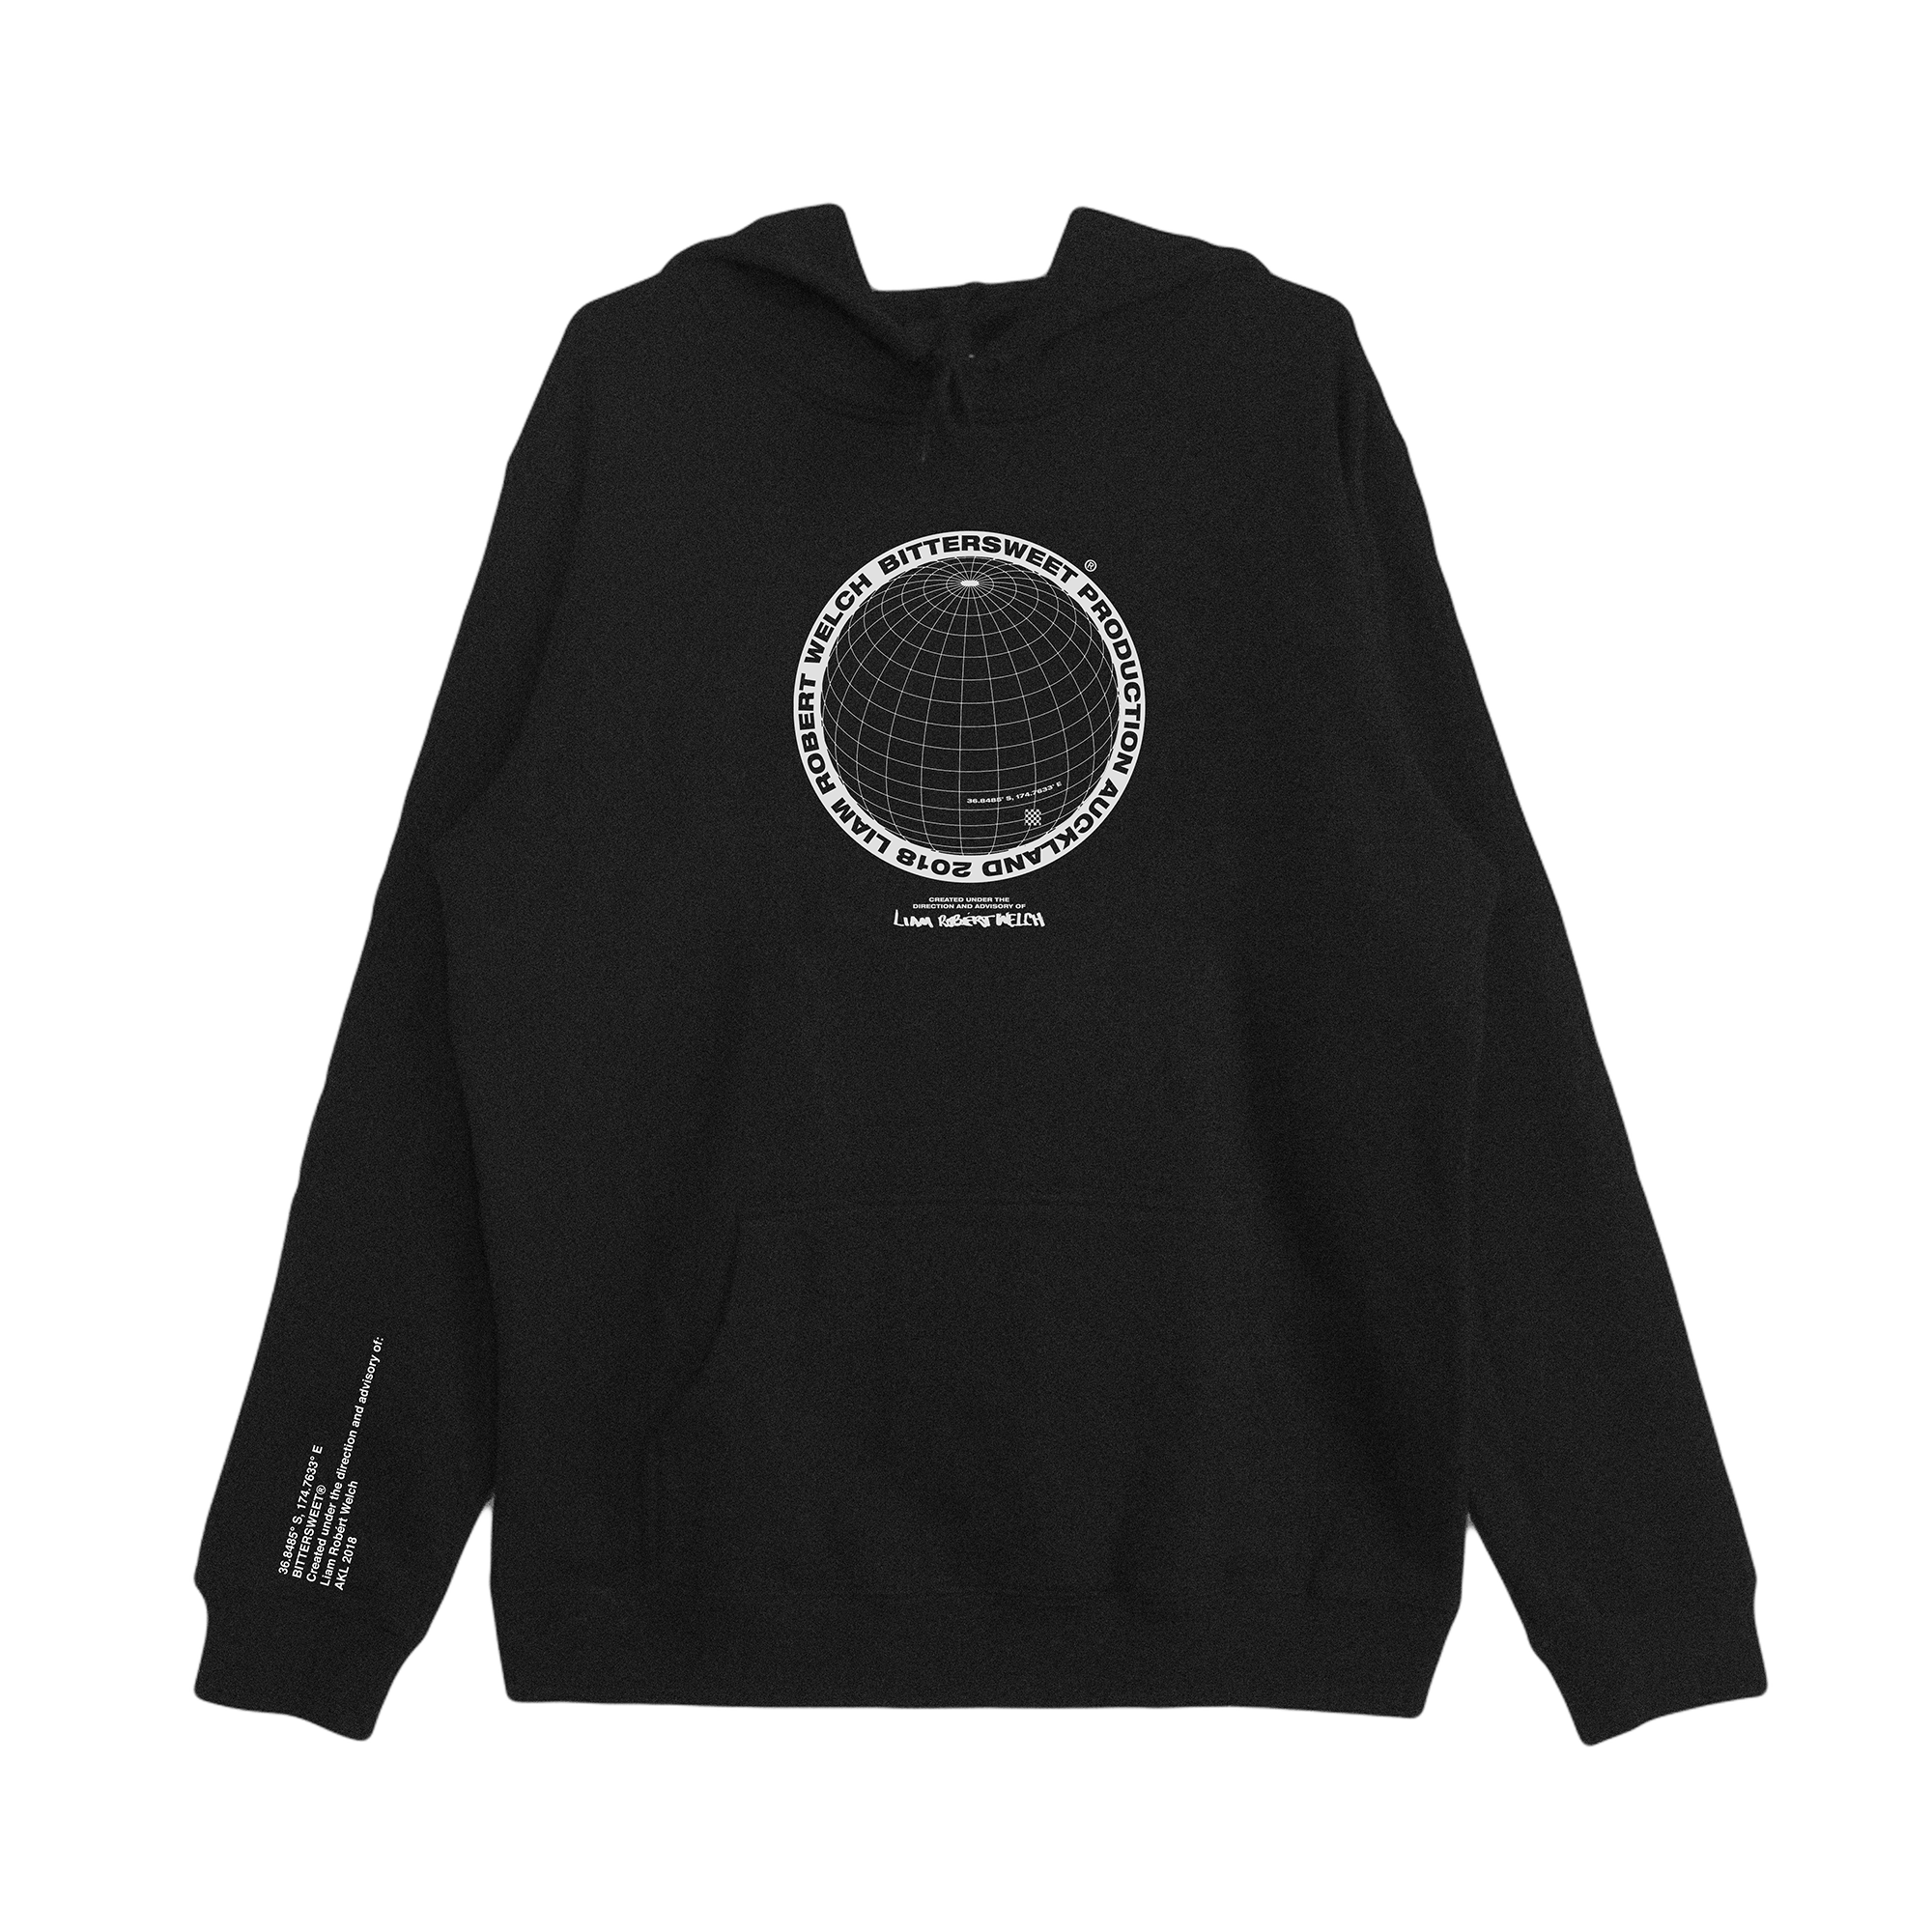 The Universal Hoodie - Bittersweet New Zealand Streetwear Clothing T-Shirt Hoodies Auckland Hype Stripes Reddit Declan Short